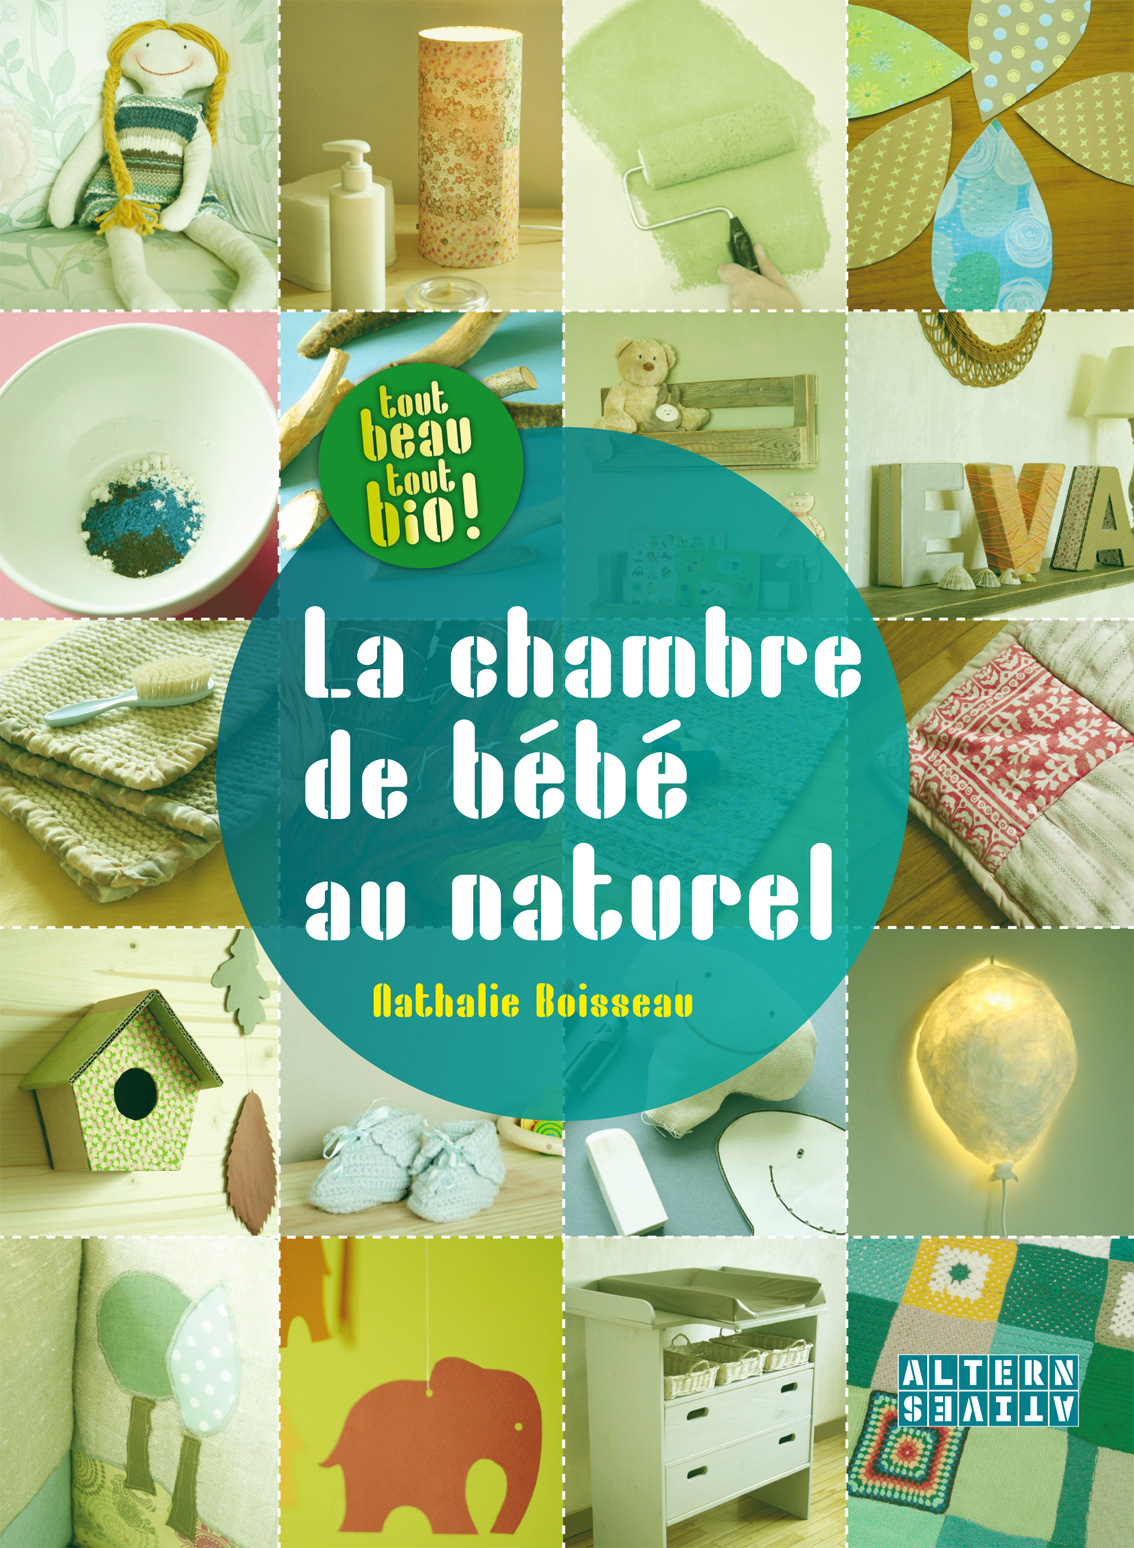 La Chambre de bébé au naturel, Editions Alternatives